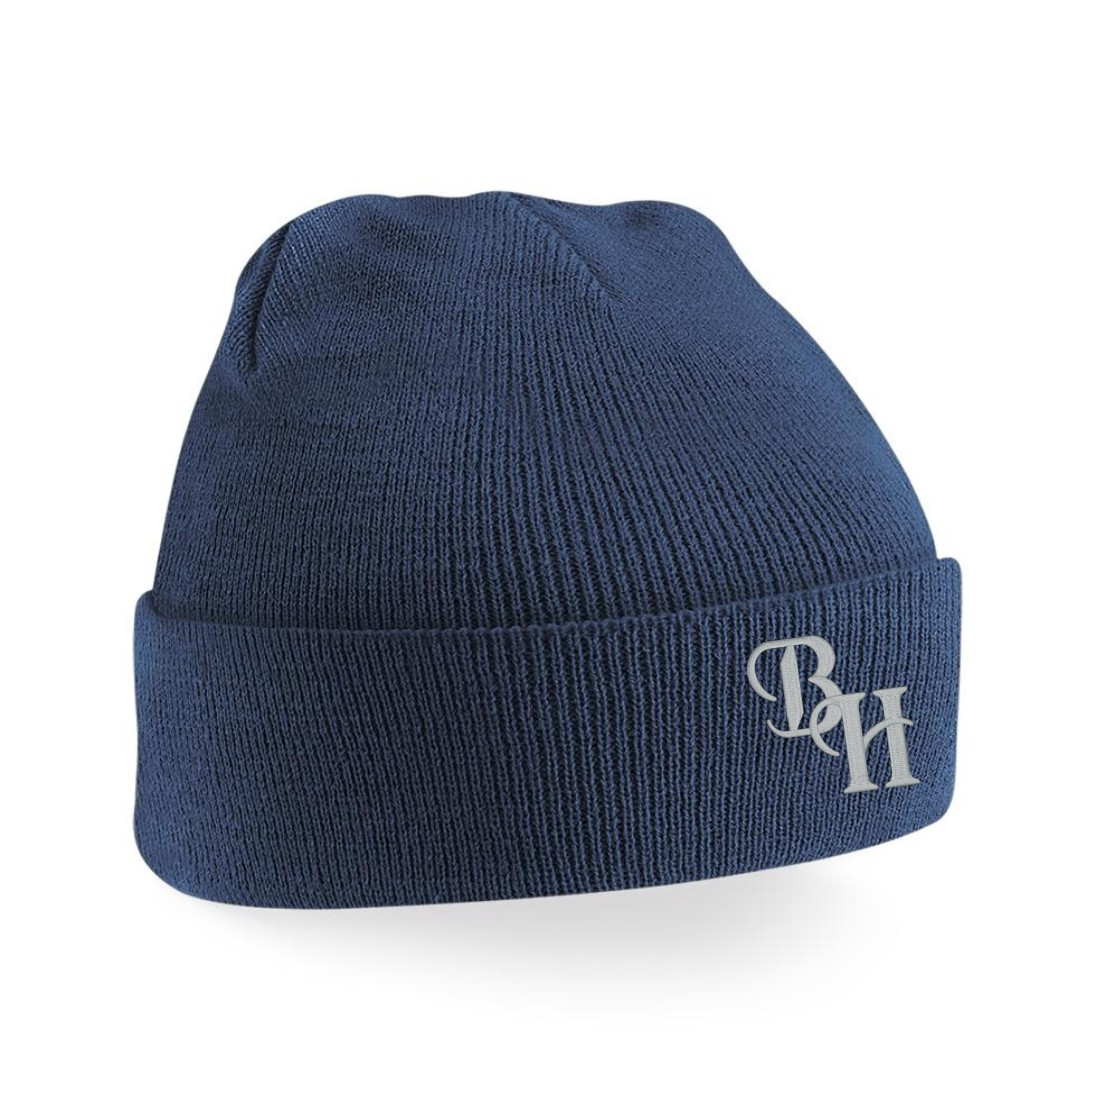 Beanie hat- Border Hunt – C   A Embroidery and Print 4cd467b5051